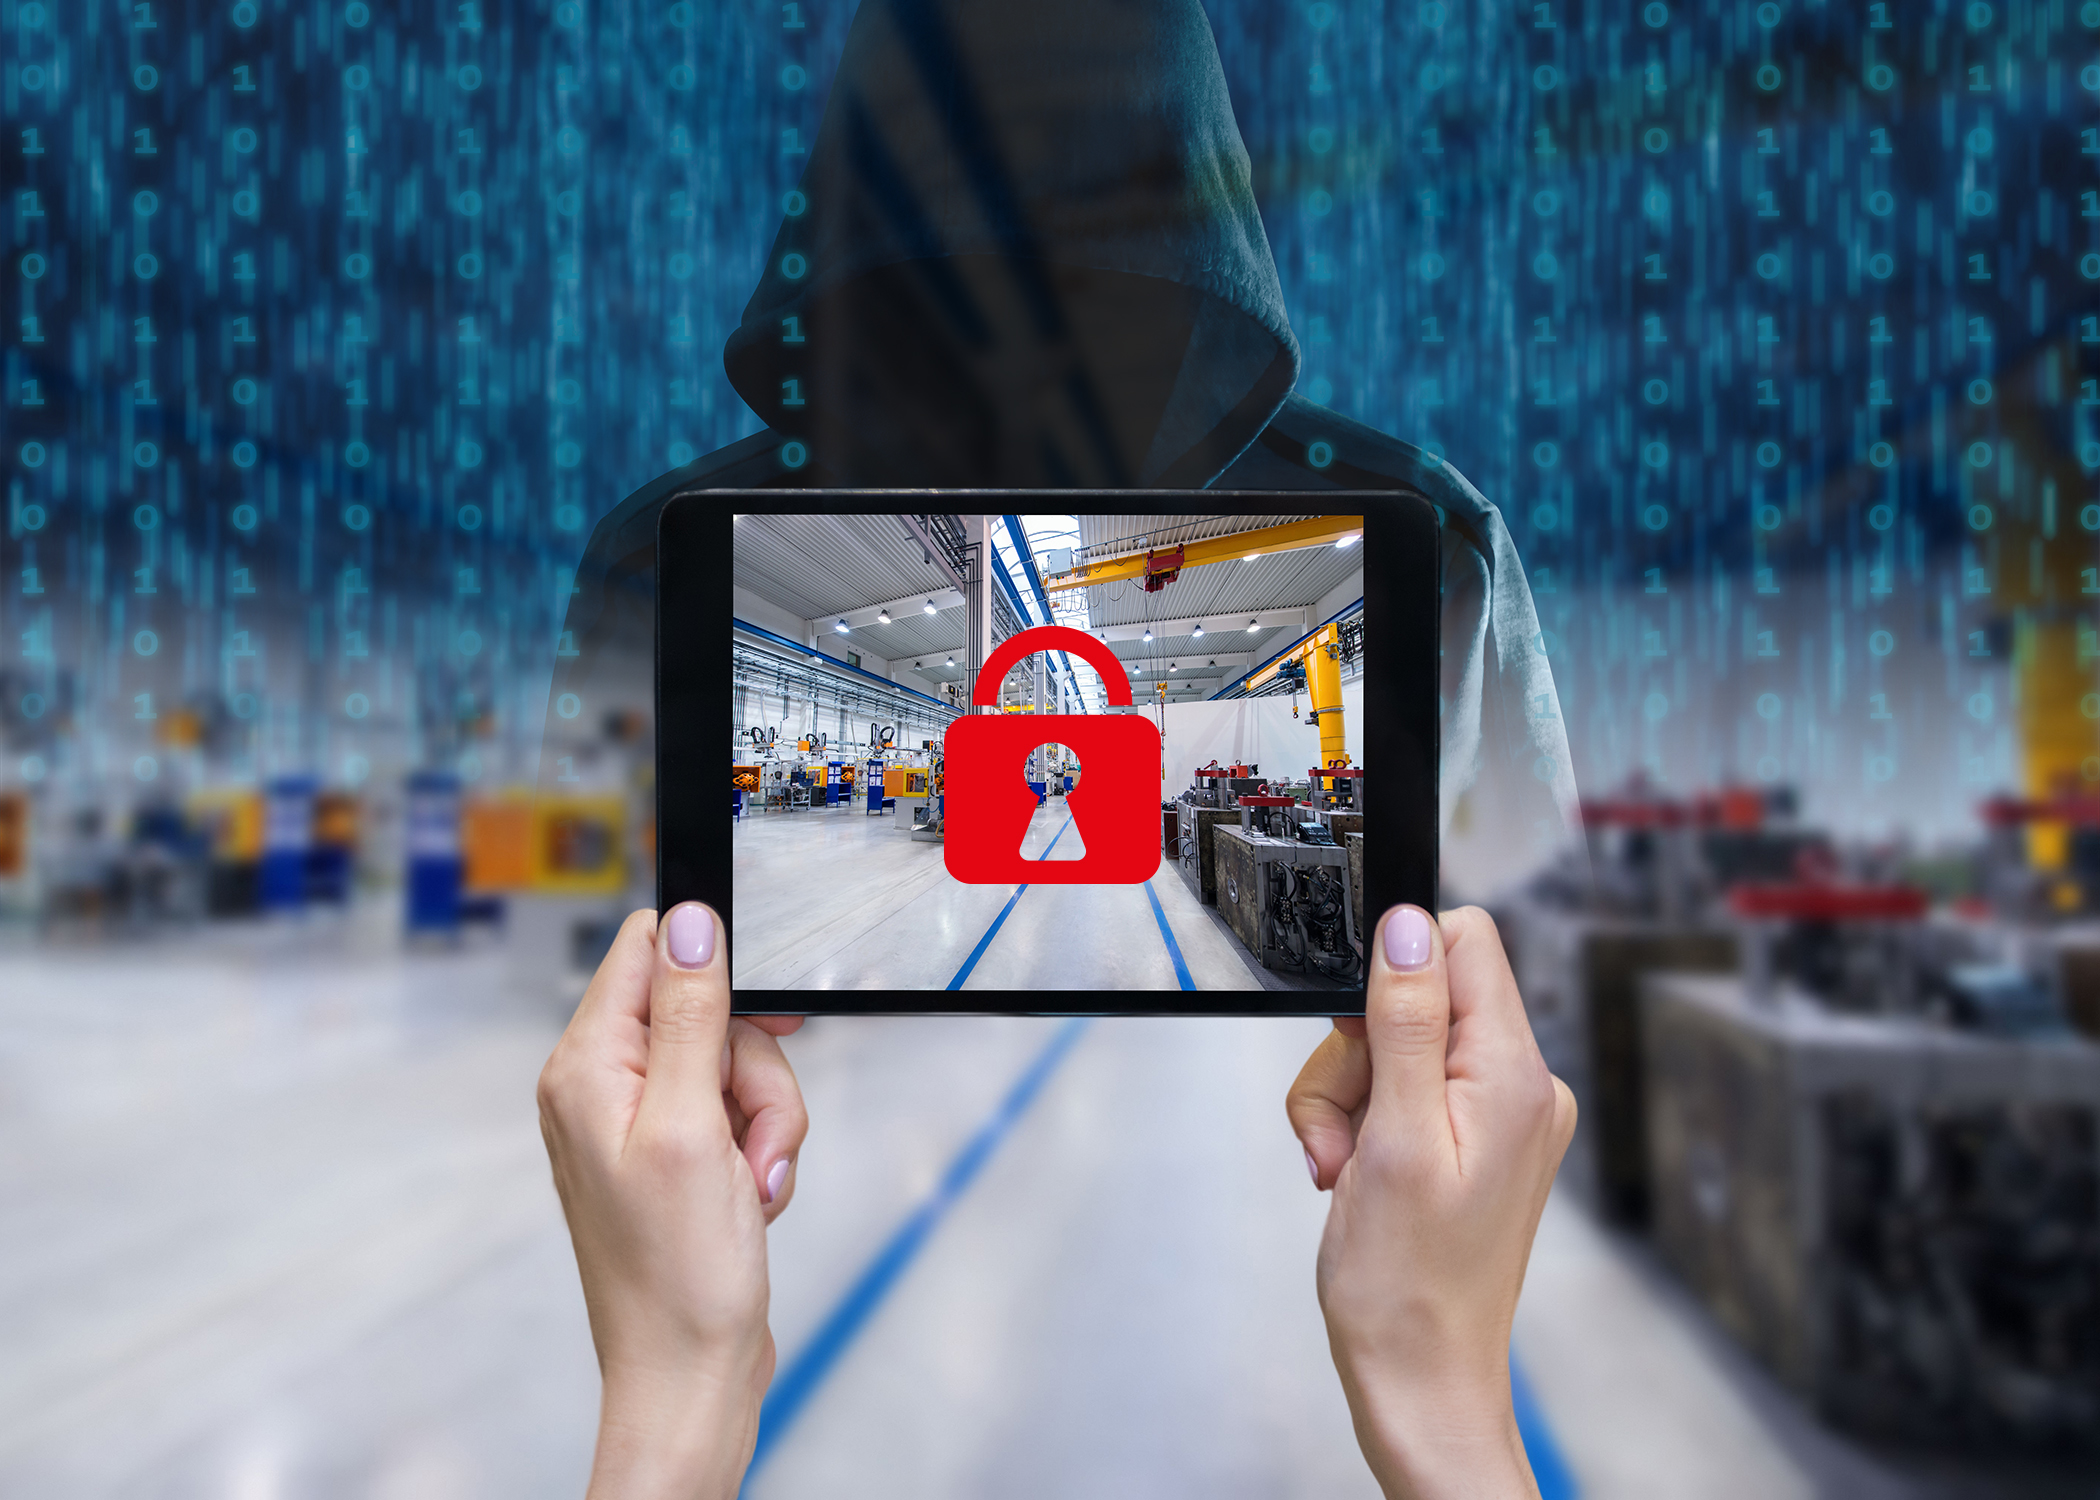 Cyber-security in the emerging digital world